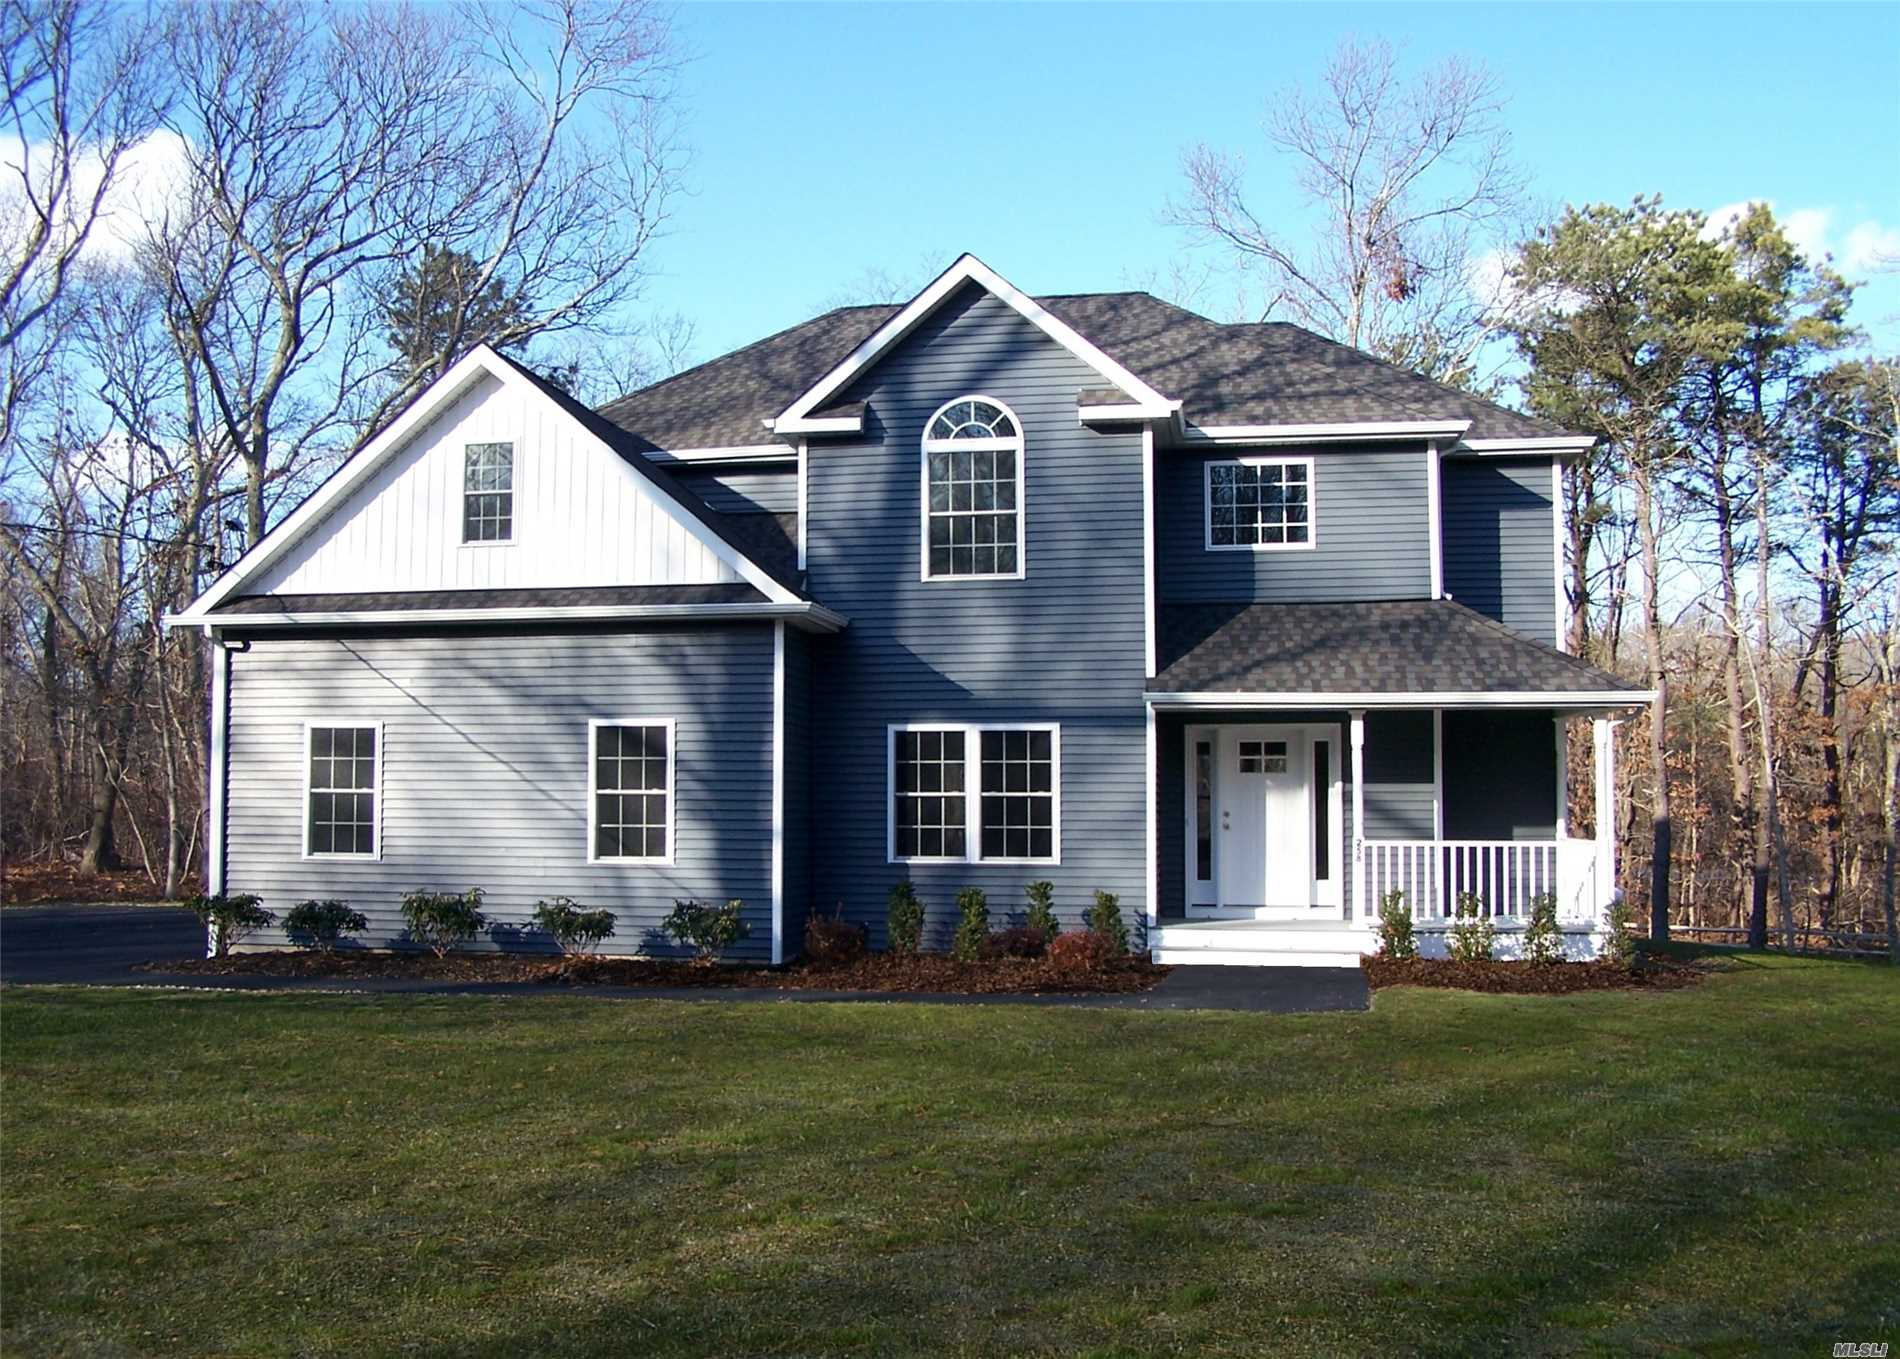 New Construction, Blue House Great Location , On A 2 Acre Lot! Features Master Suite W/Full Bath & Walk In Closet, Granite Eat-In-Kitchen, Formal Dining Room, Gas Fp & Gas Stove Hardwood Floors On 1st Floor, Carpet On 2nd, Cac, Full Basement With Ose. Builder To Give Allotment For Appliances! $1800.